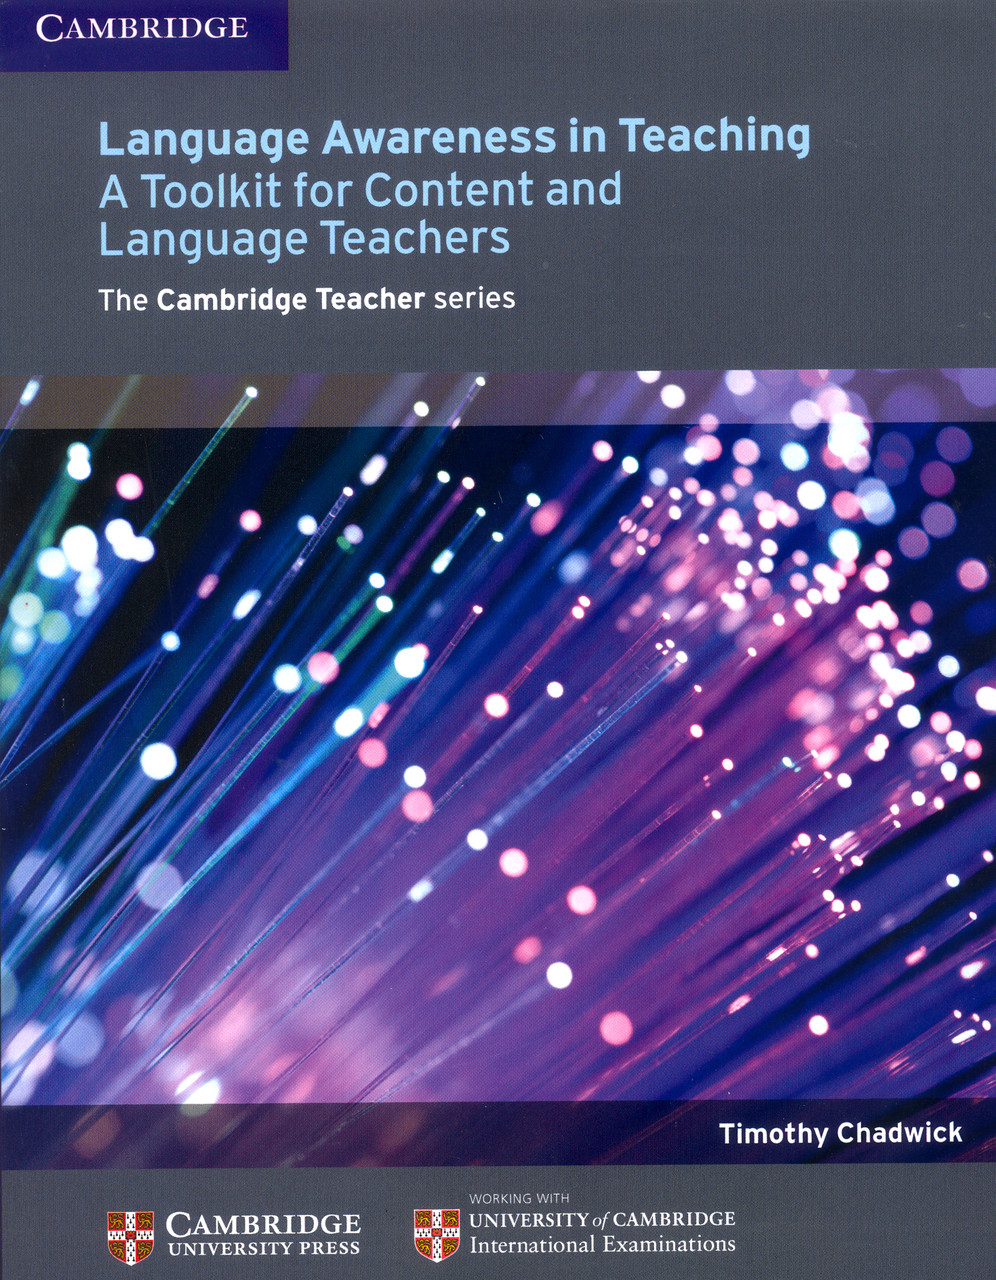 Language Awareness in Teaching. A Toolkit for Content and Language Teachers